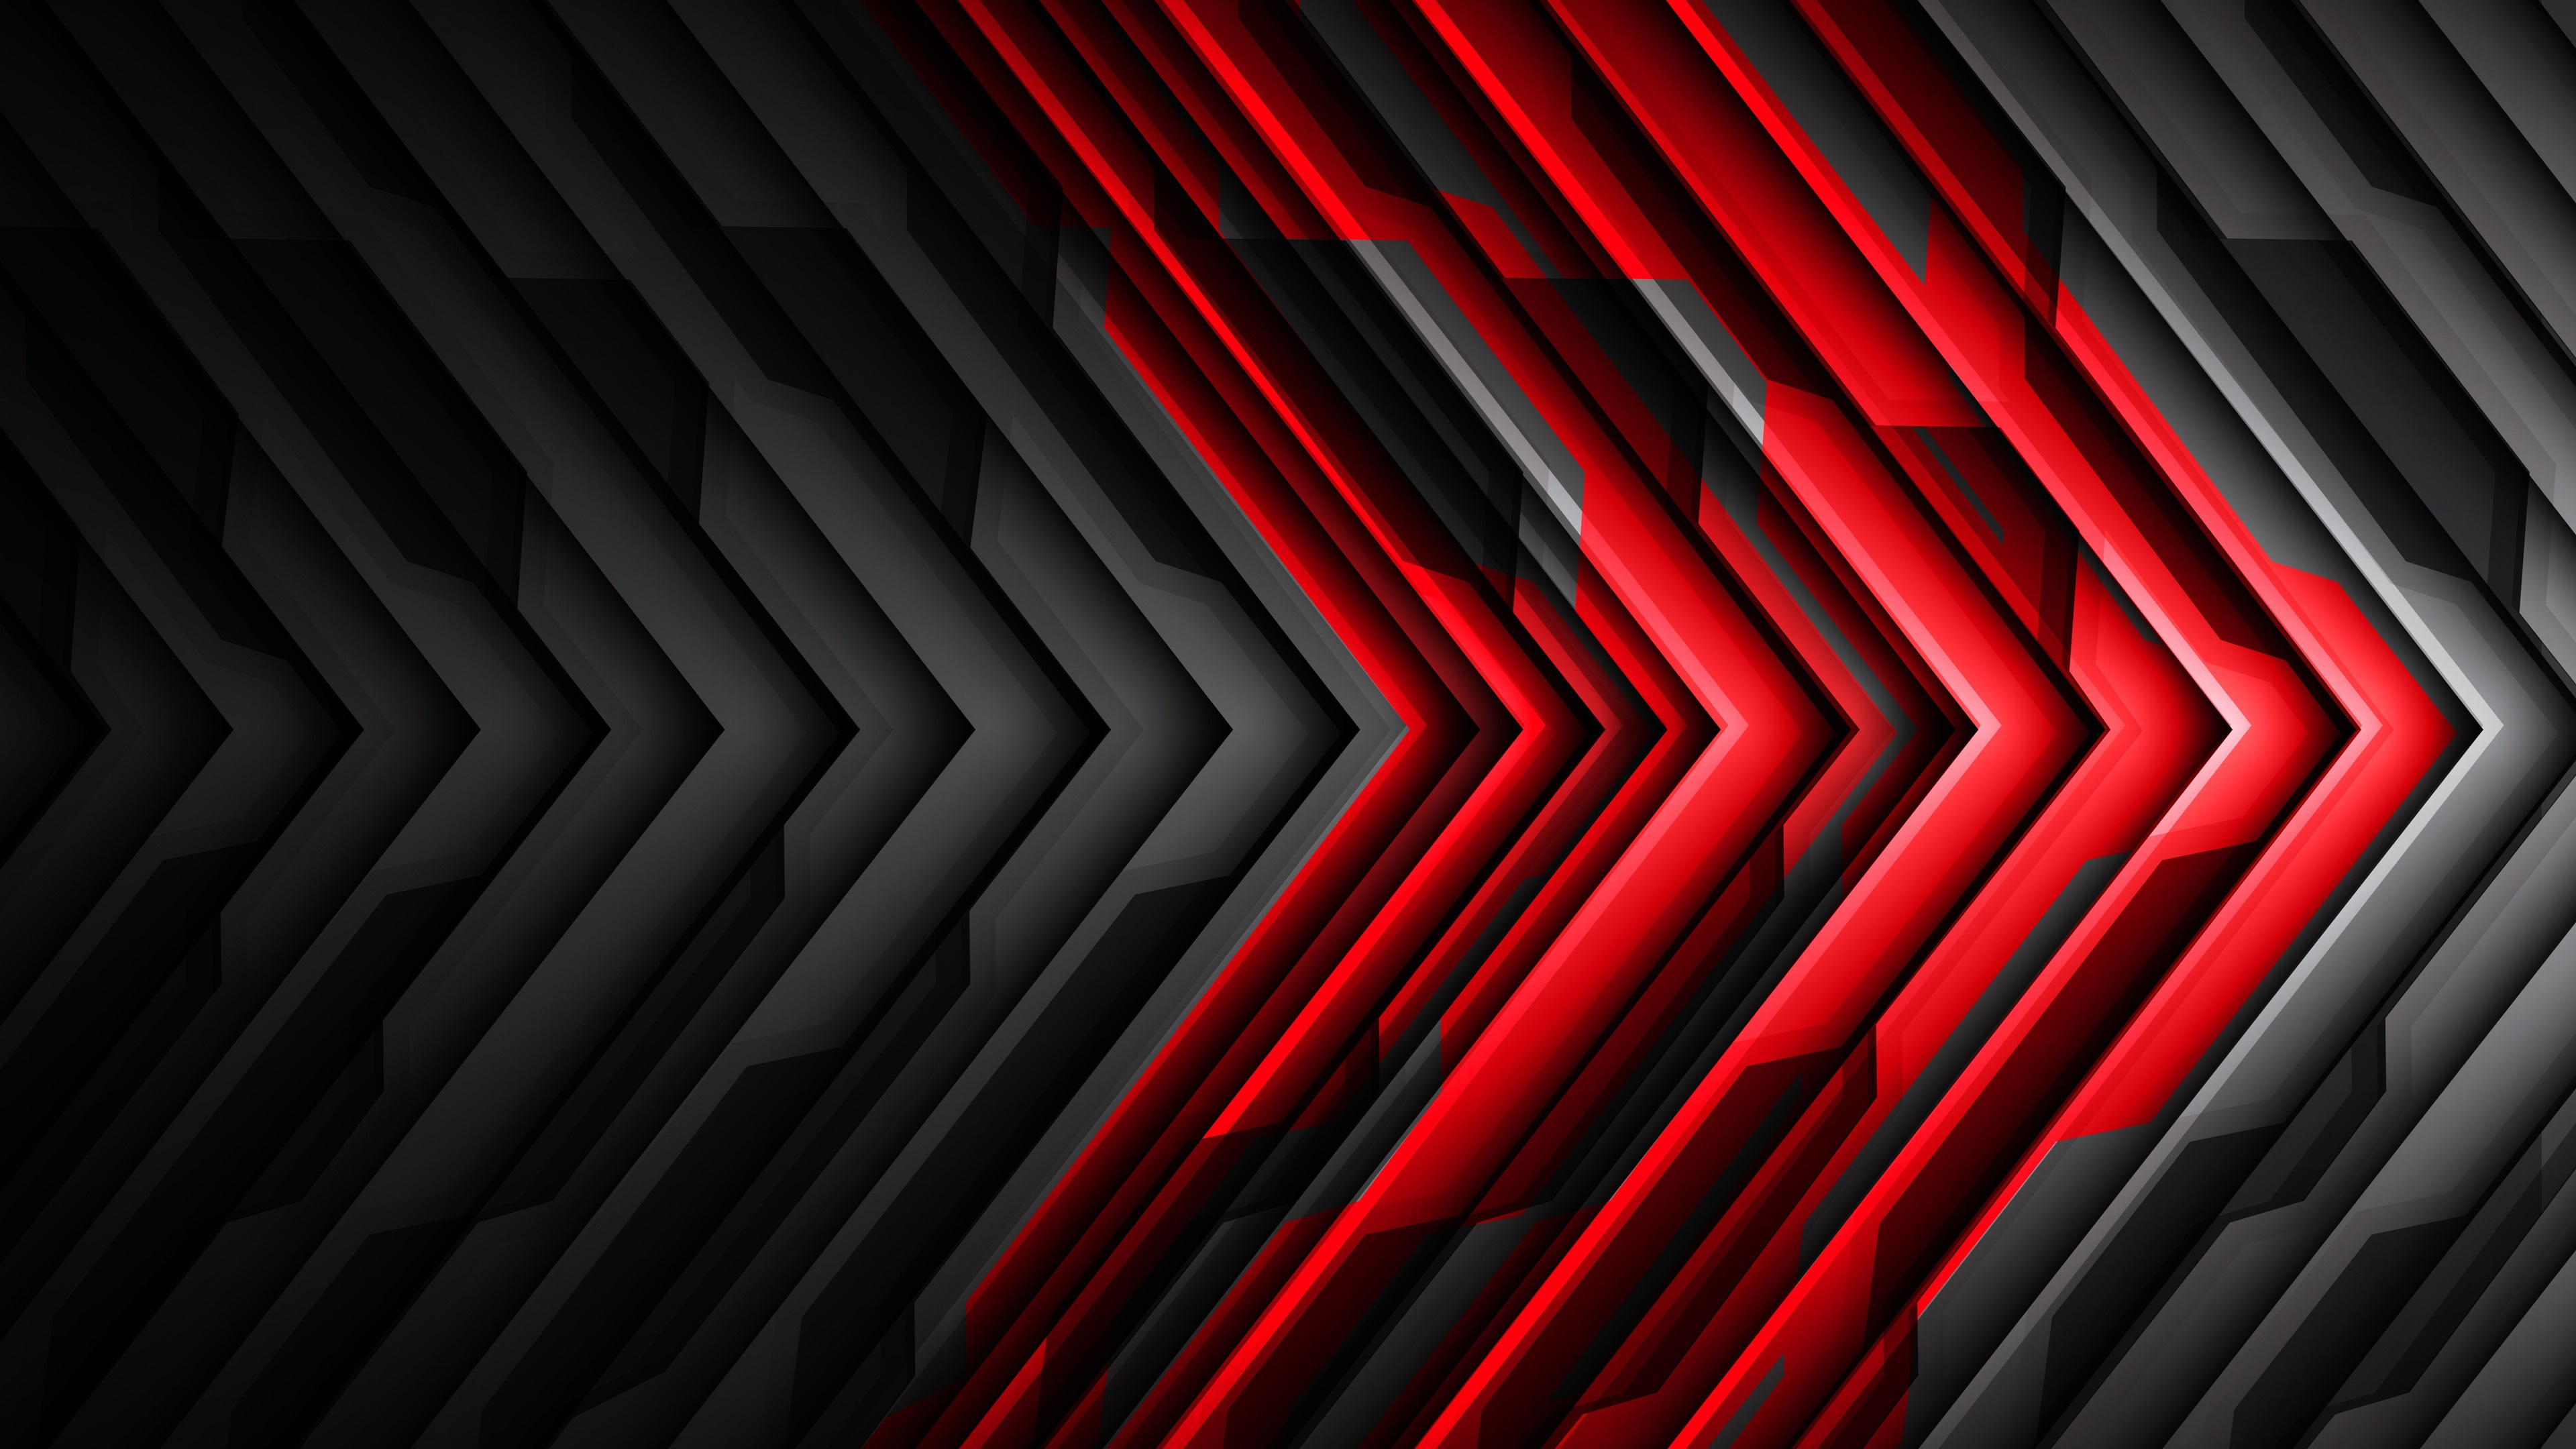 Wallpaper Black And Red Striped Arrow Abstract 3840x2160